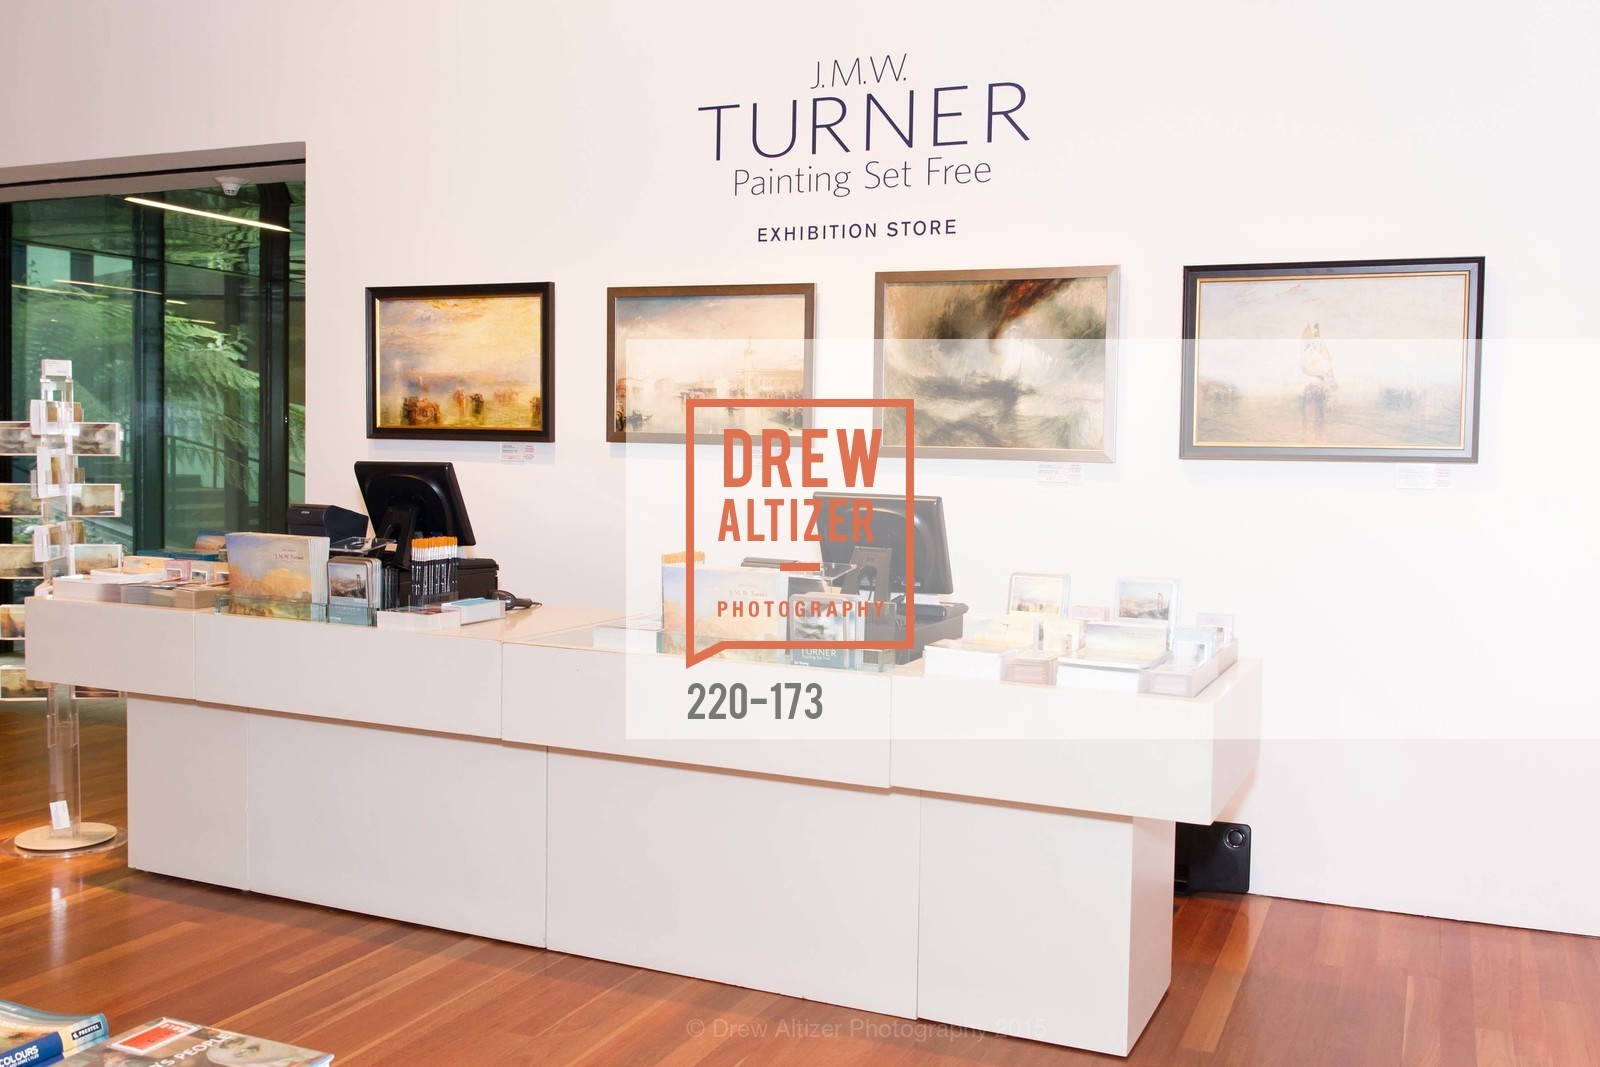 atmosphere, J. M. W. Turner: Painting Set Free Press Preview, June 18th, 2015, Photo,Drew Altizer, Drew Altizer Photography, full-service event agency, private events, San Francisco photographer, photographer California